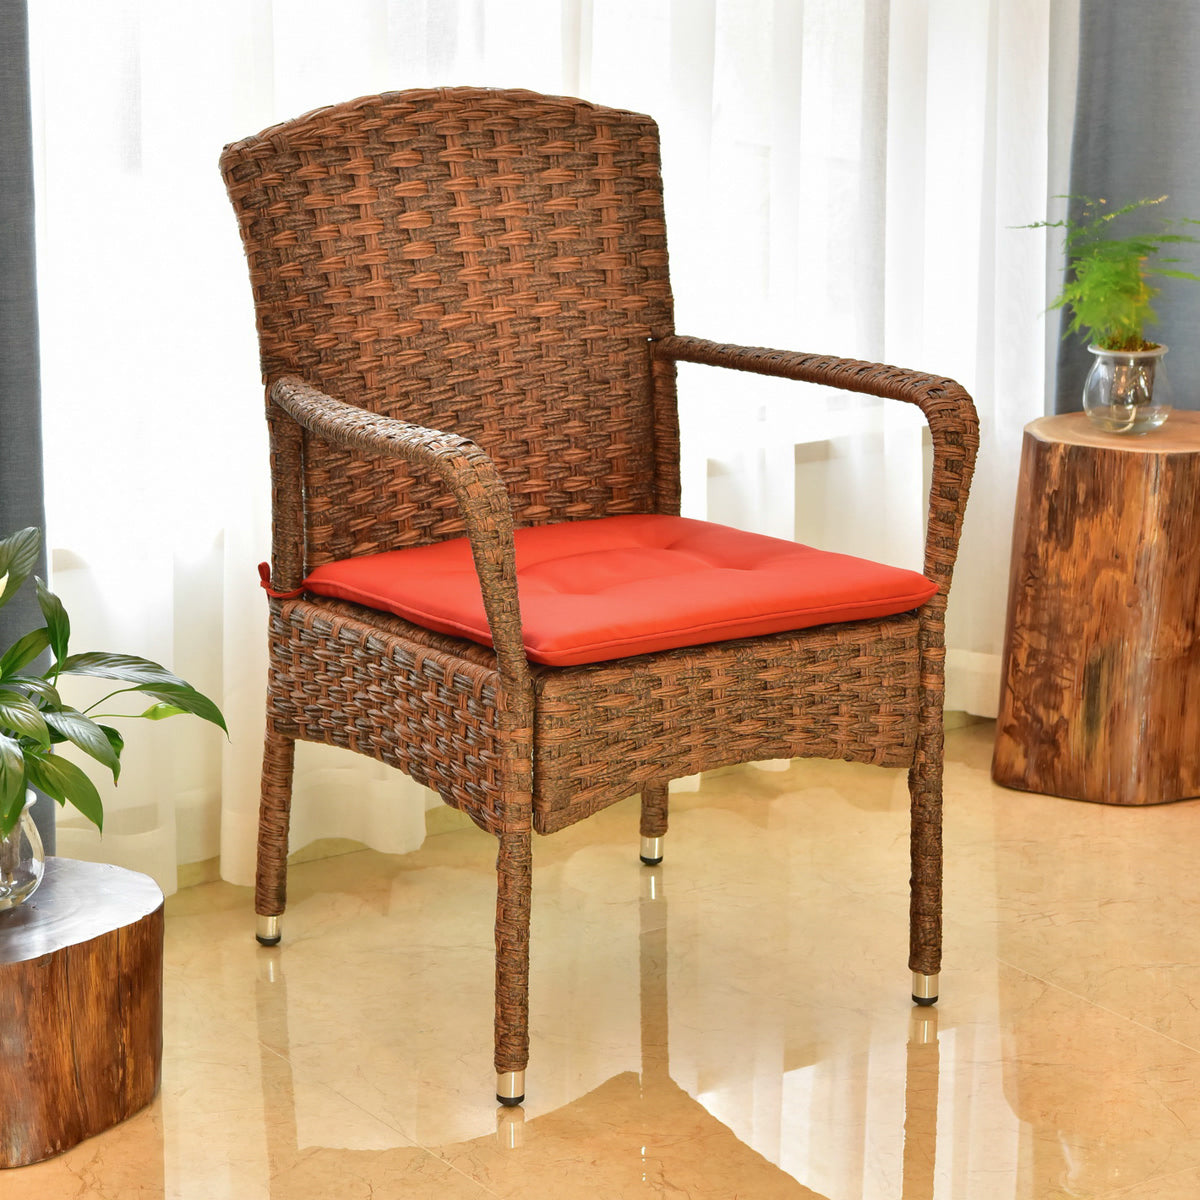 Majorca Resin Pandan Steel Arm Chair with Cushions Espresso/Spice by International Caravan - Swing Chairs Direct